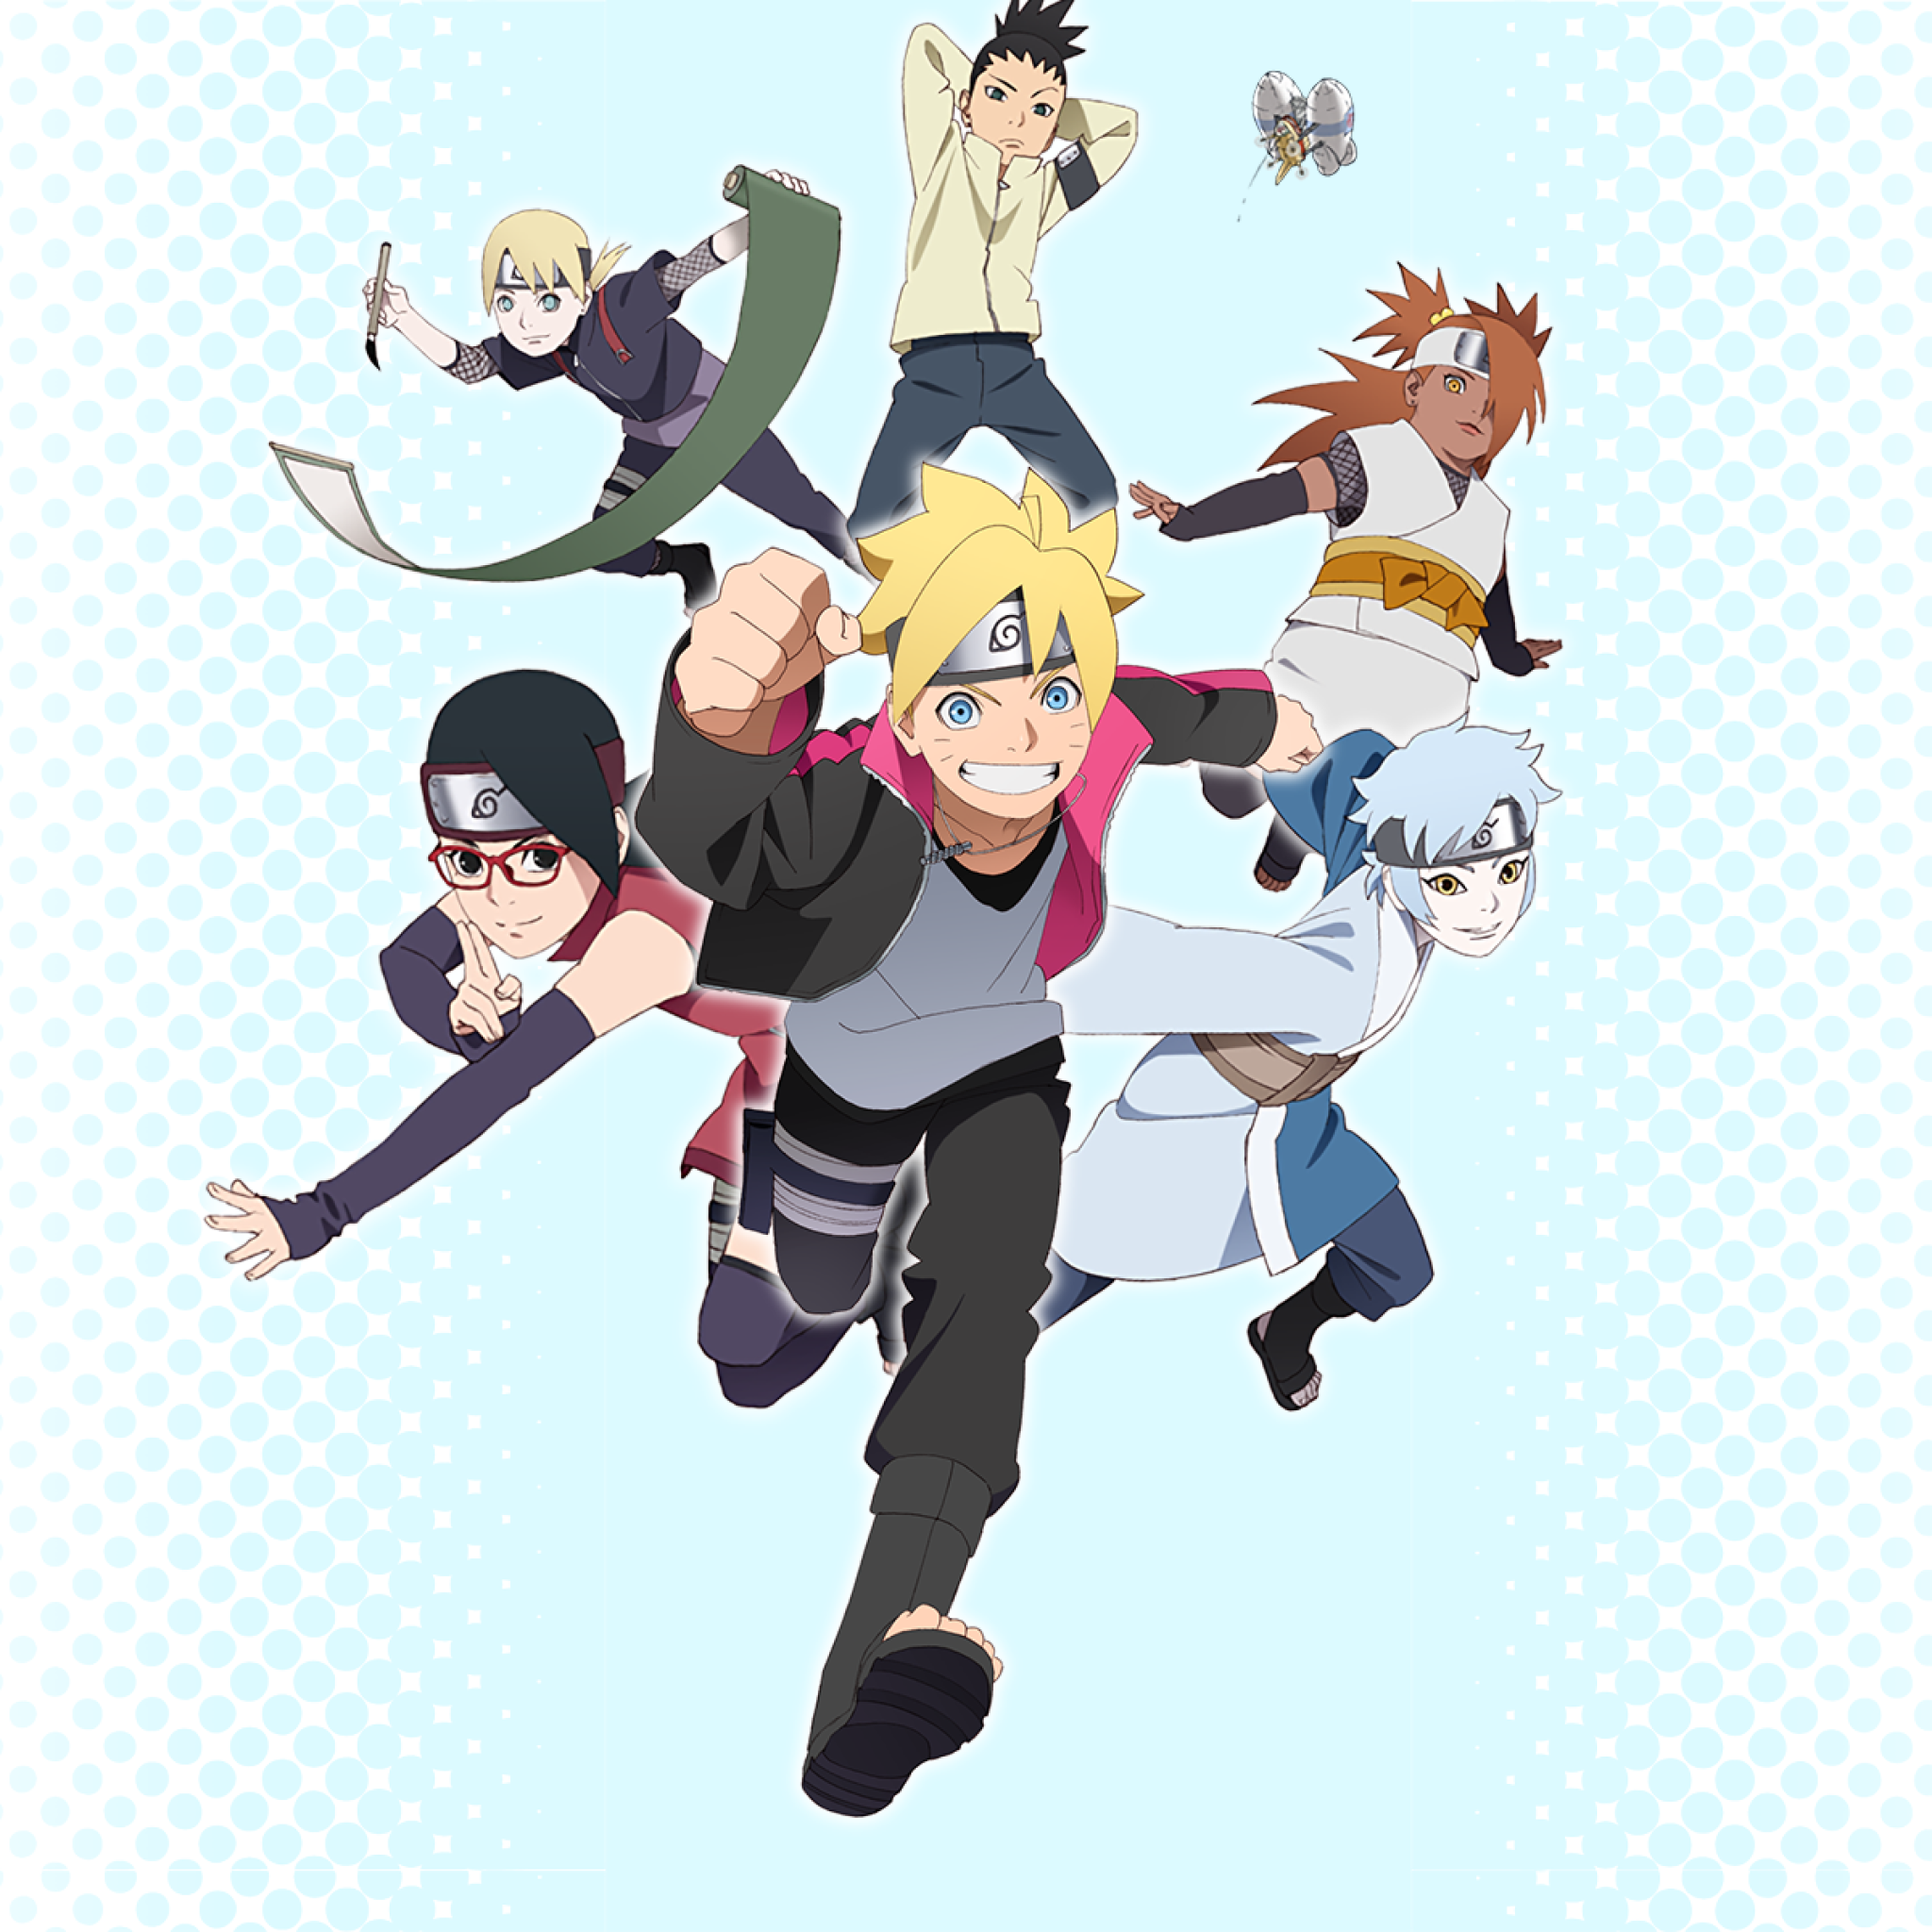 Wonderful Wallpaper Naruto Cute - f2e5859888976a354fcf86ca4903d8ea  Collection_1009794.png